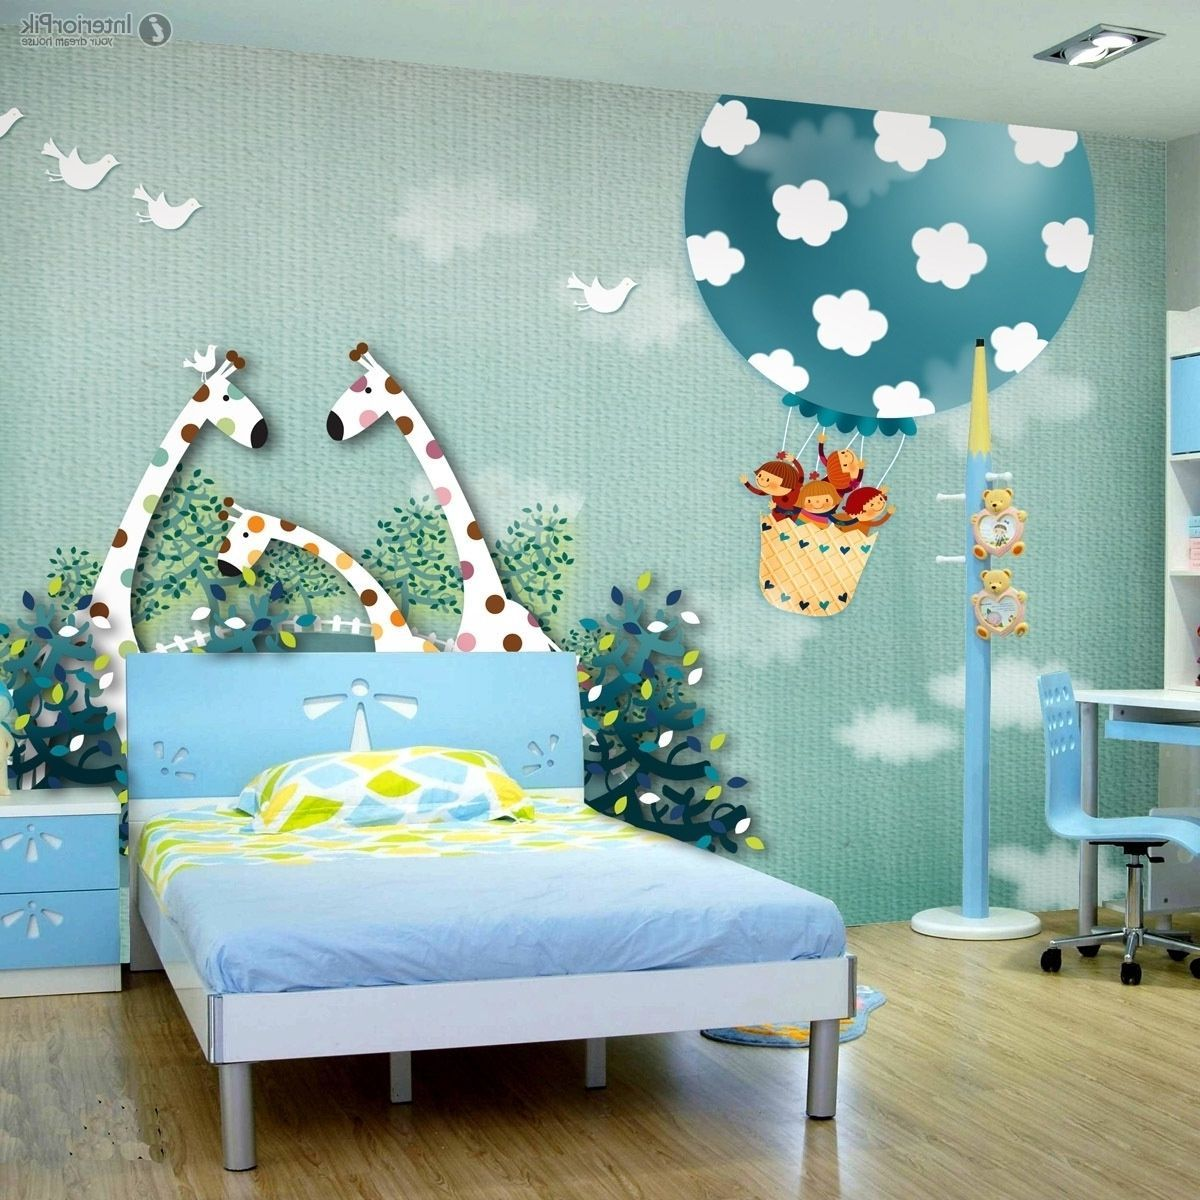 70+ Kids Room Murals   Interior Design Bedroom Ideas On A Budget Check More  At